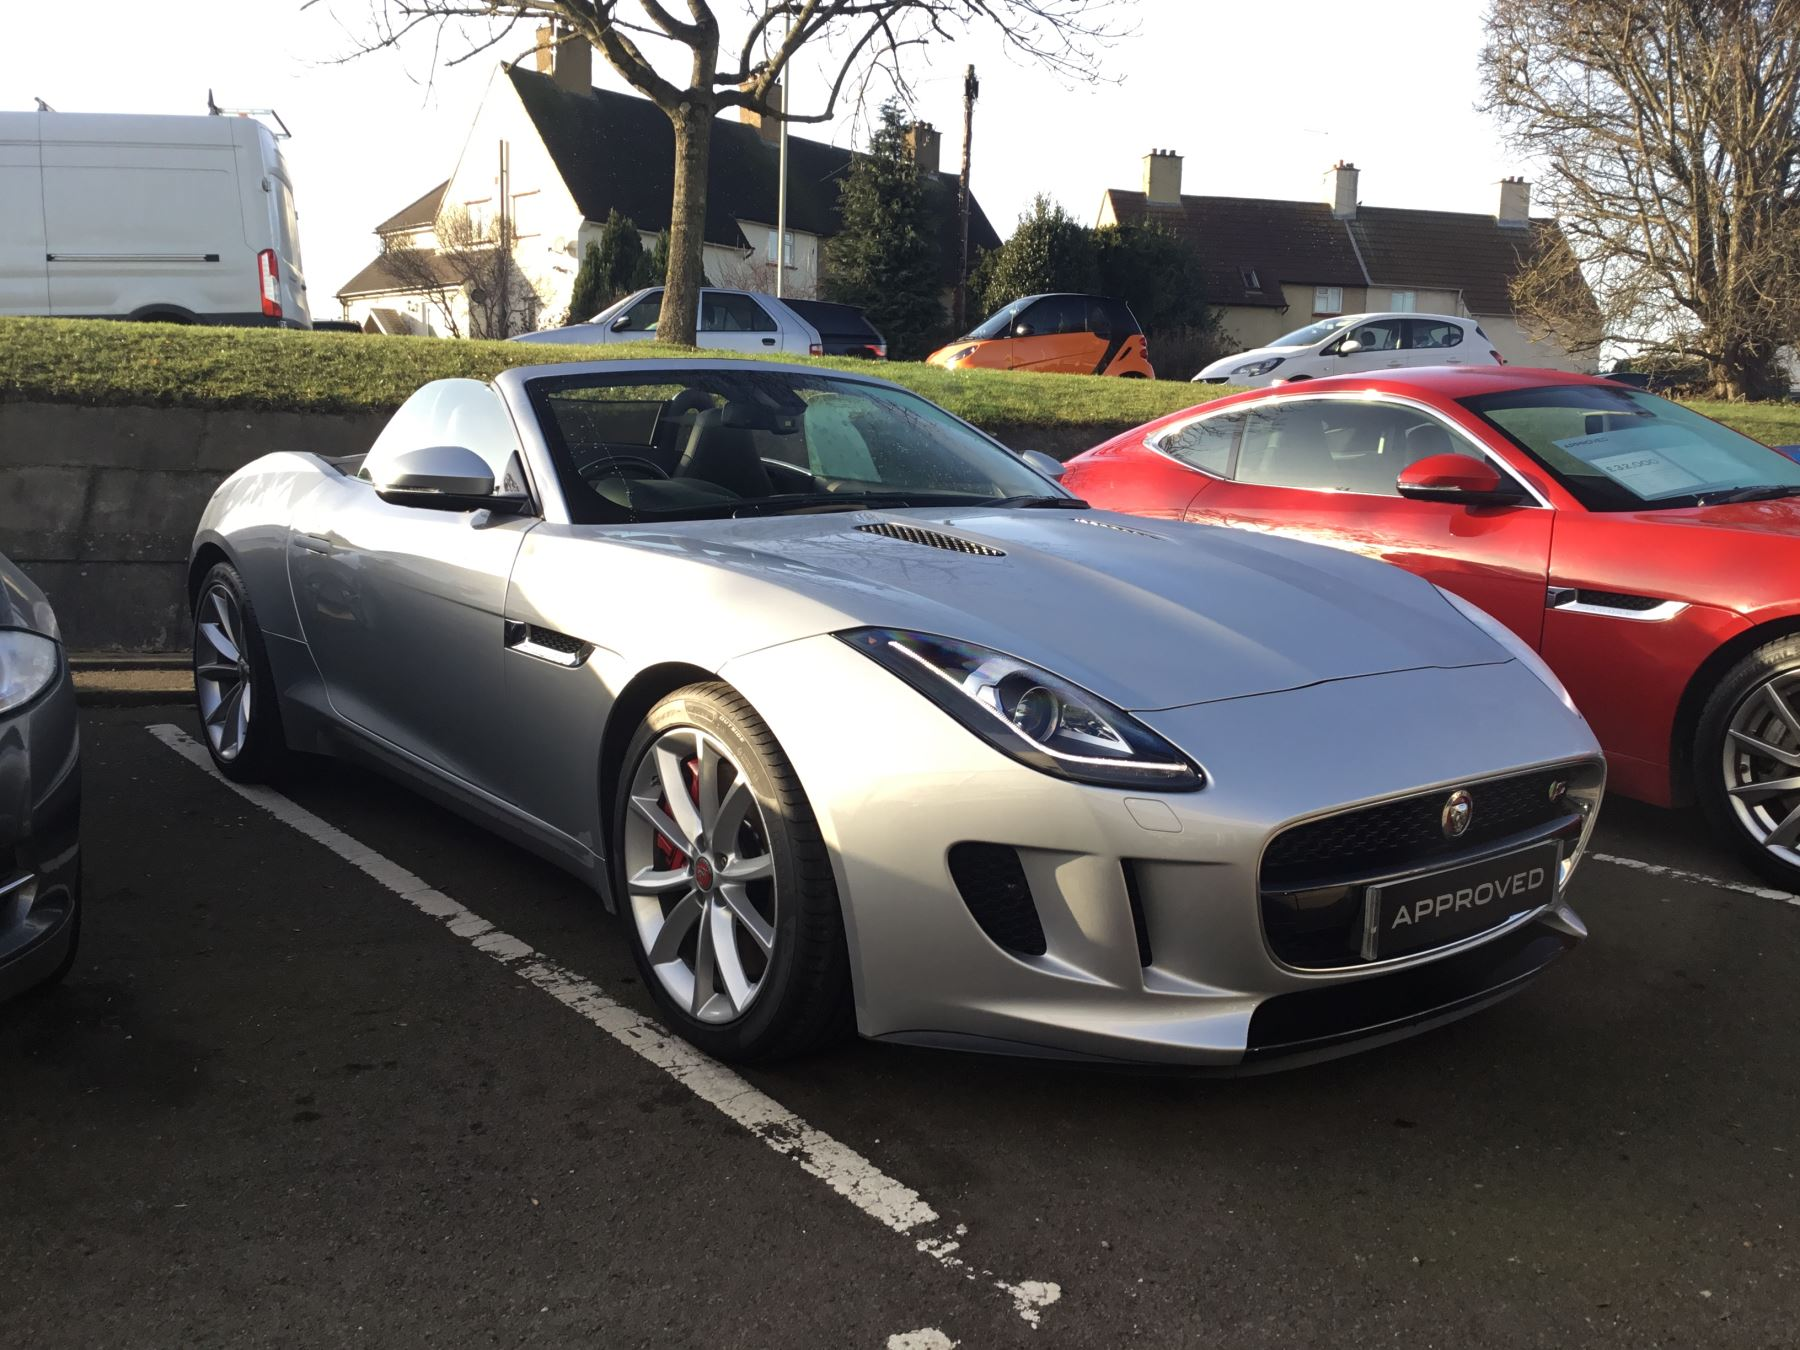 Jaguar F-TYPE 3.0 Supercharged V6 S 2dr 3 door Convertible (2015) image